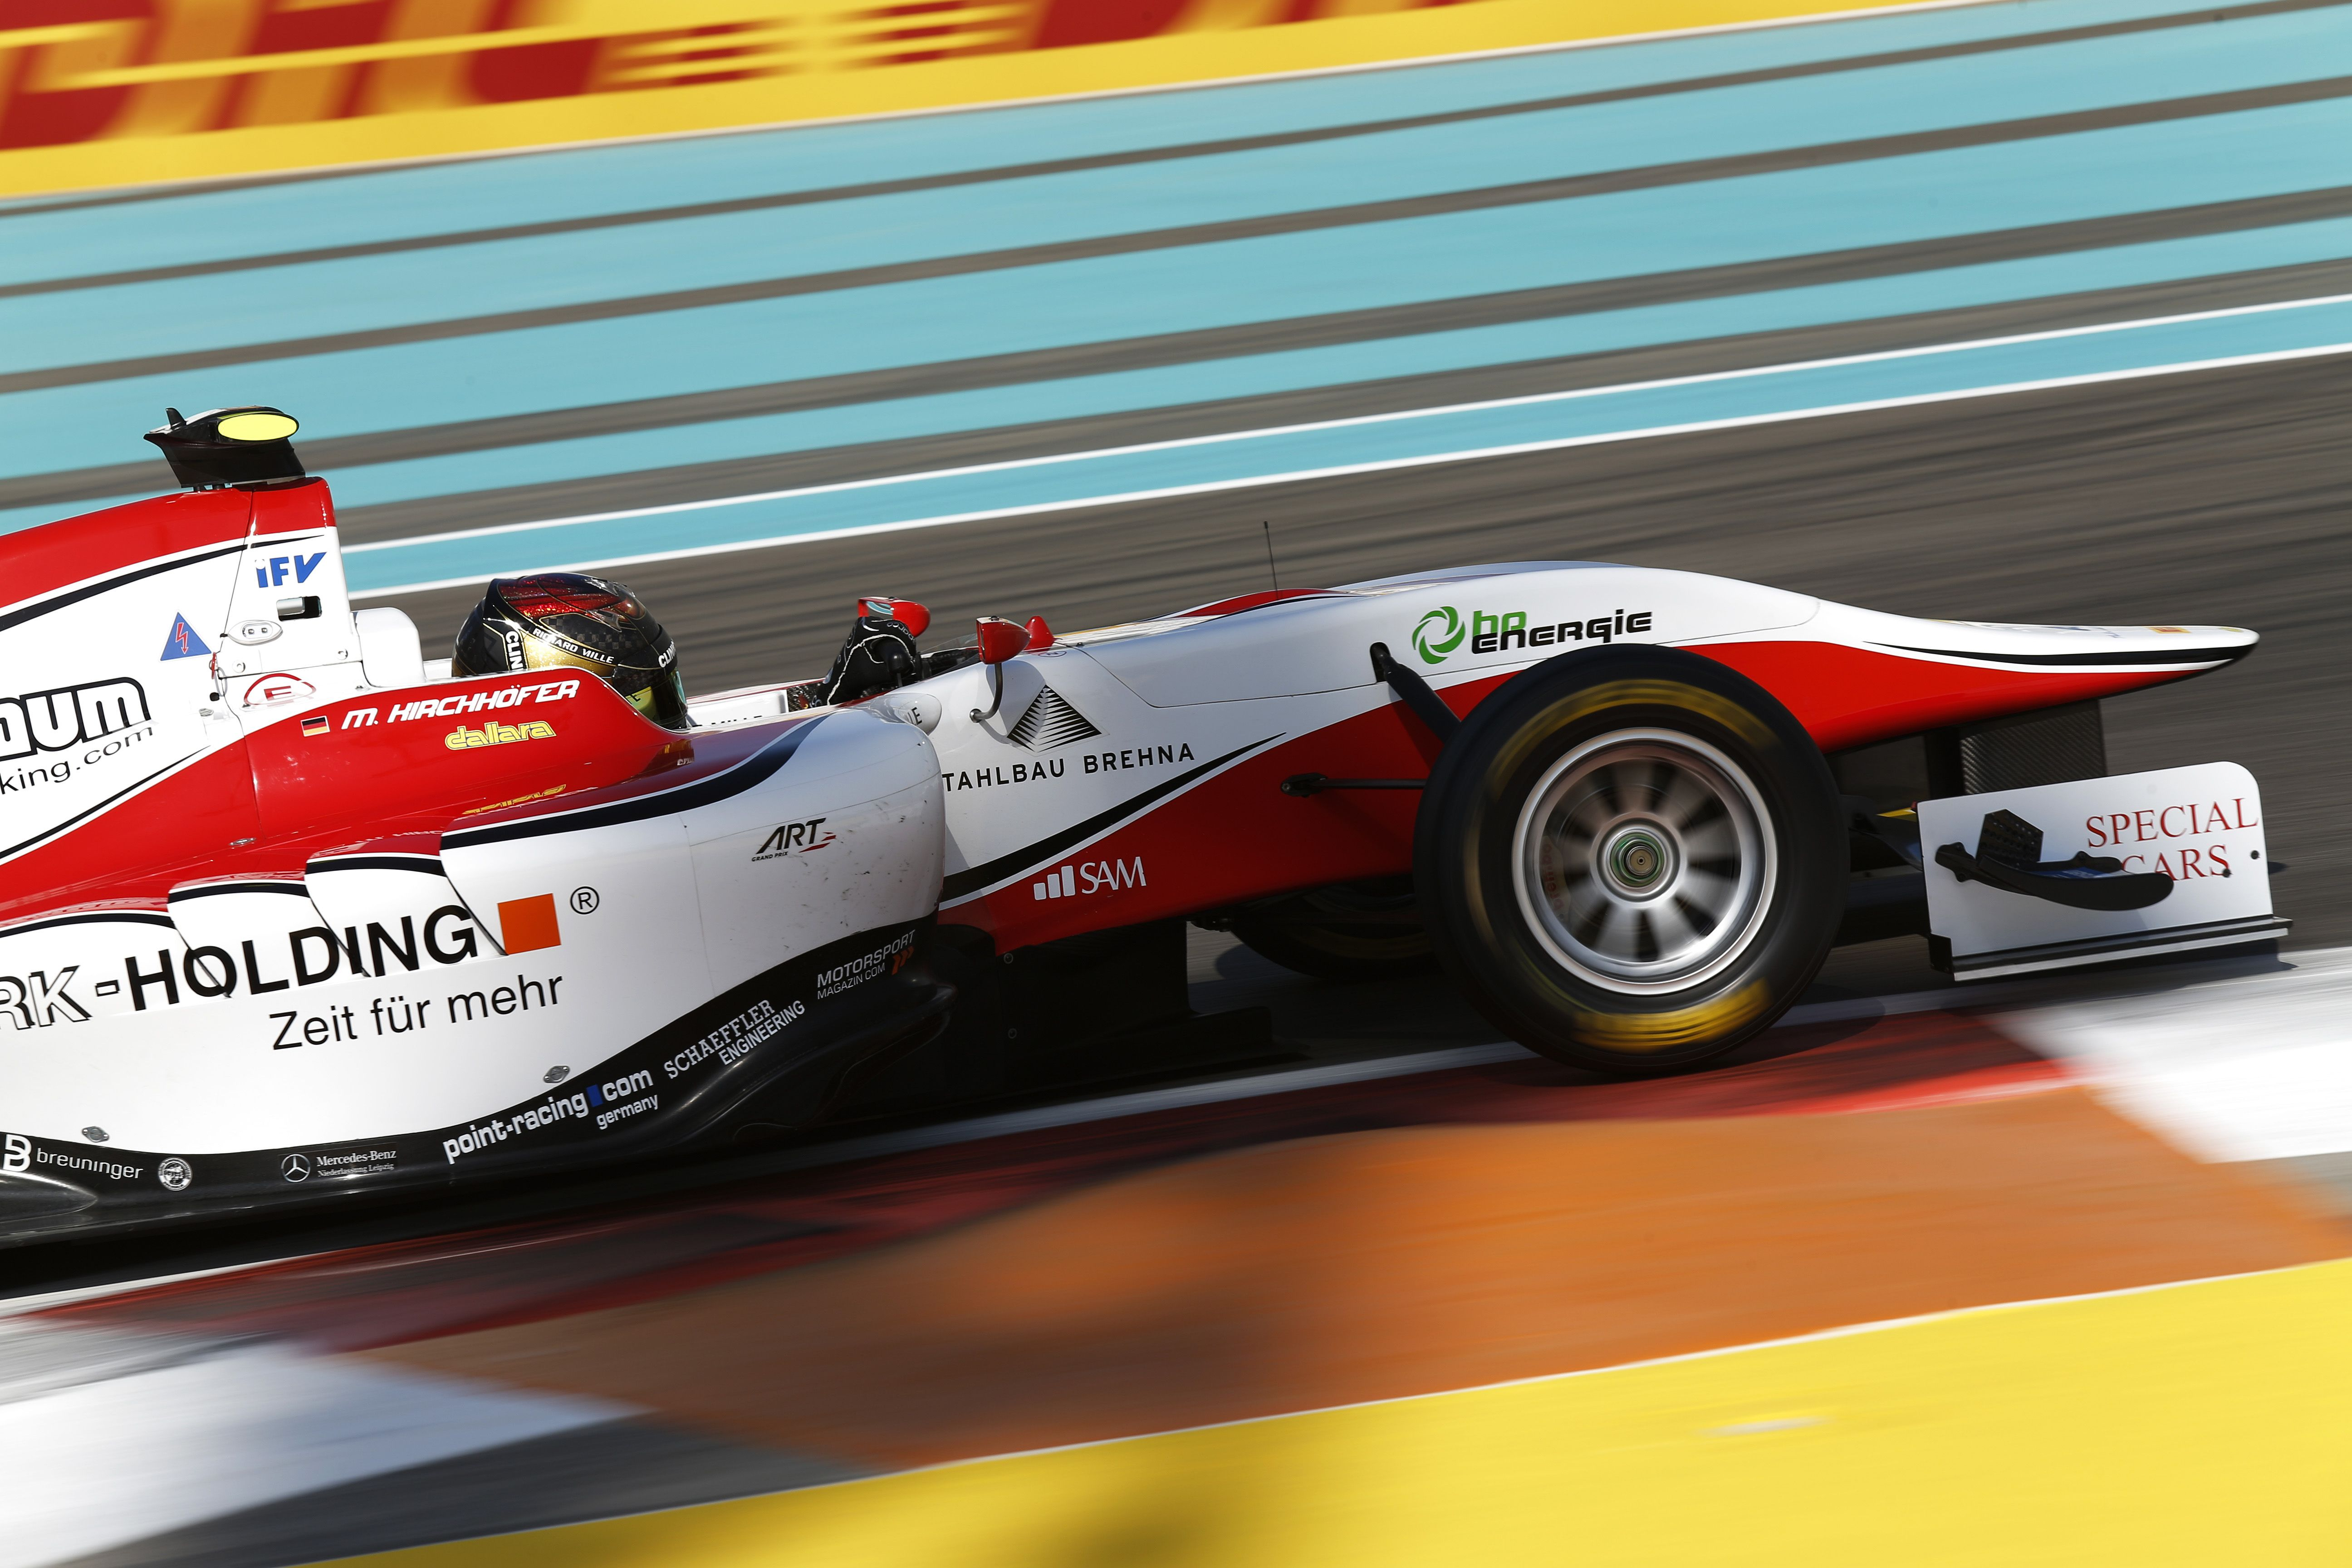 Kirchhöfer wins Race 1 in Abu Dhabi, the title yet to be decided